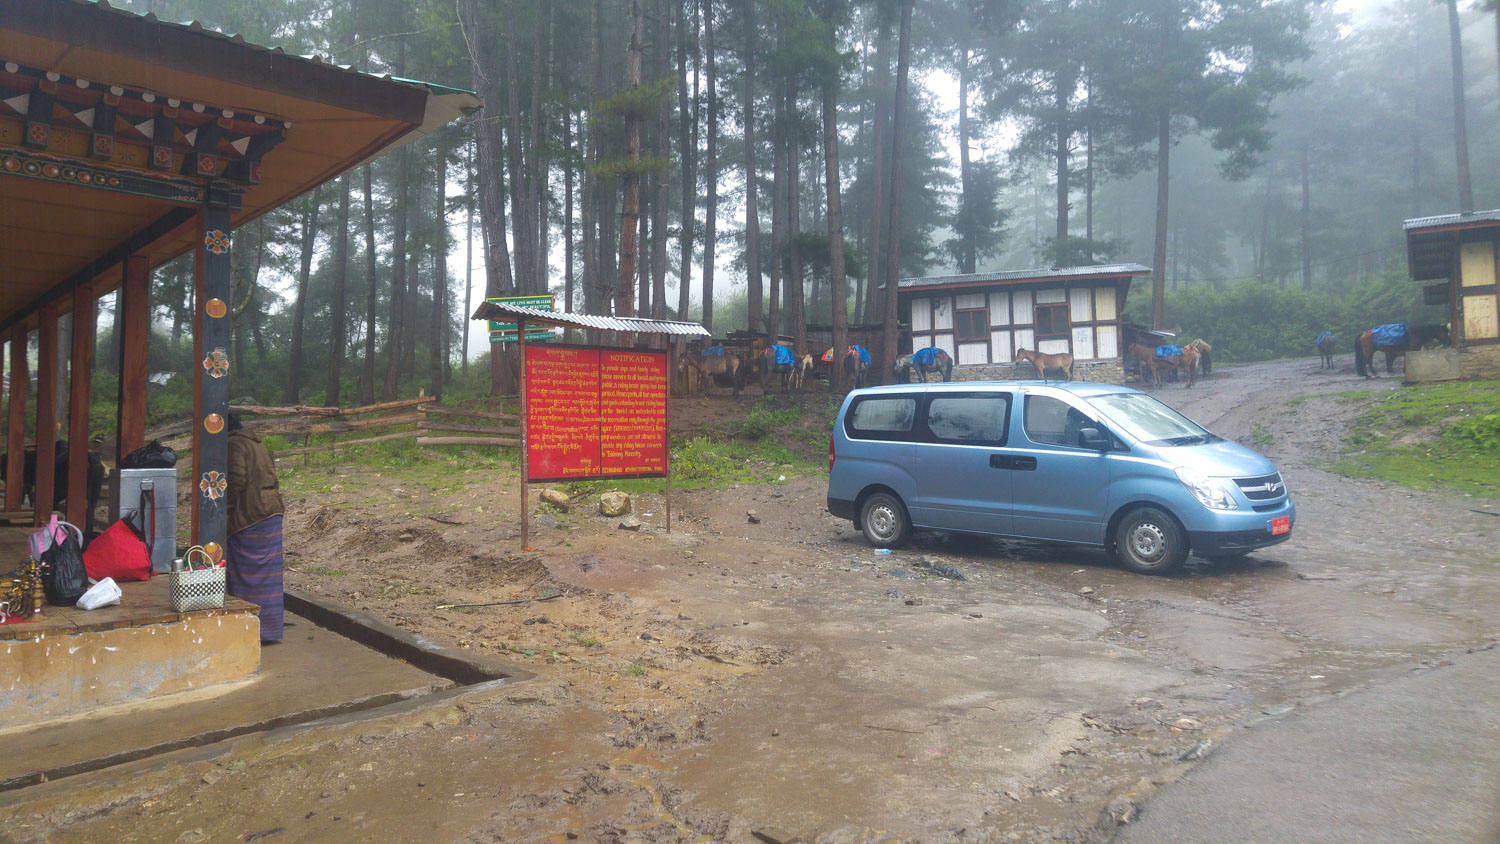 Raining in Bhutan on the way to the Tiger Nest Monastery the most famous landmark in the country